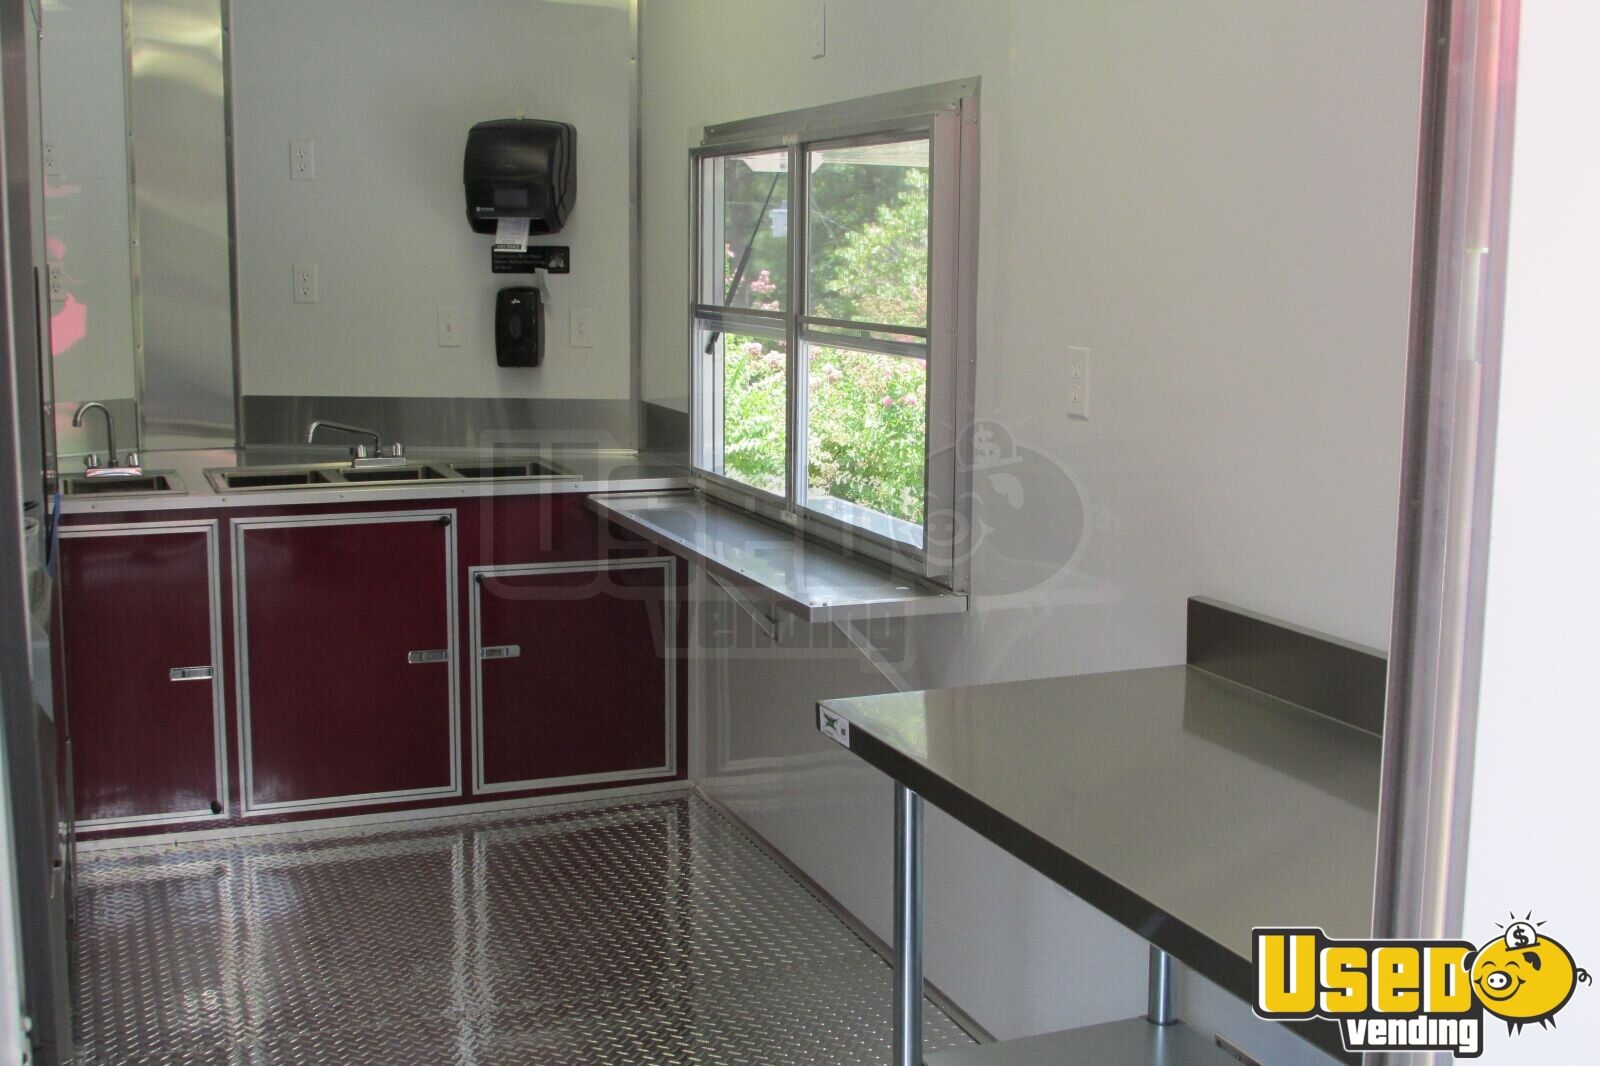 hight resolution of 2012 concession trailer 16 georgia for sale 16